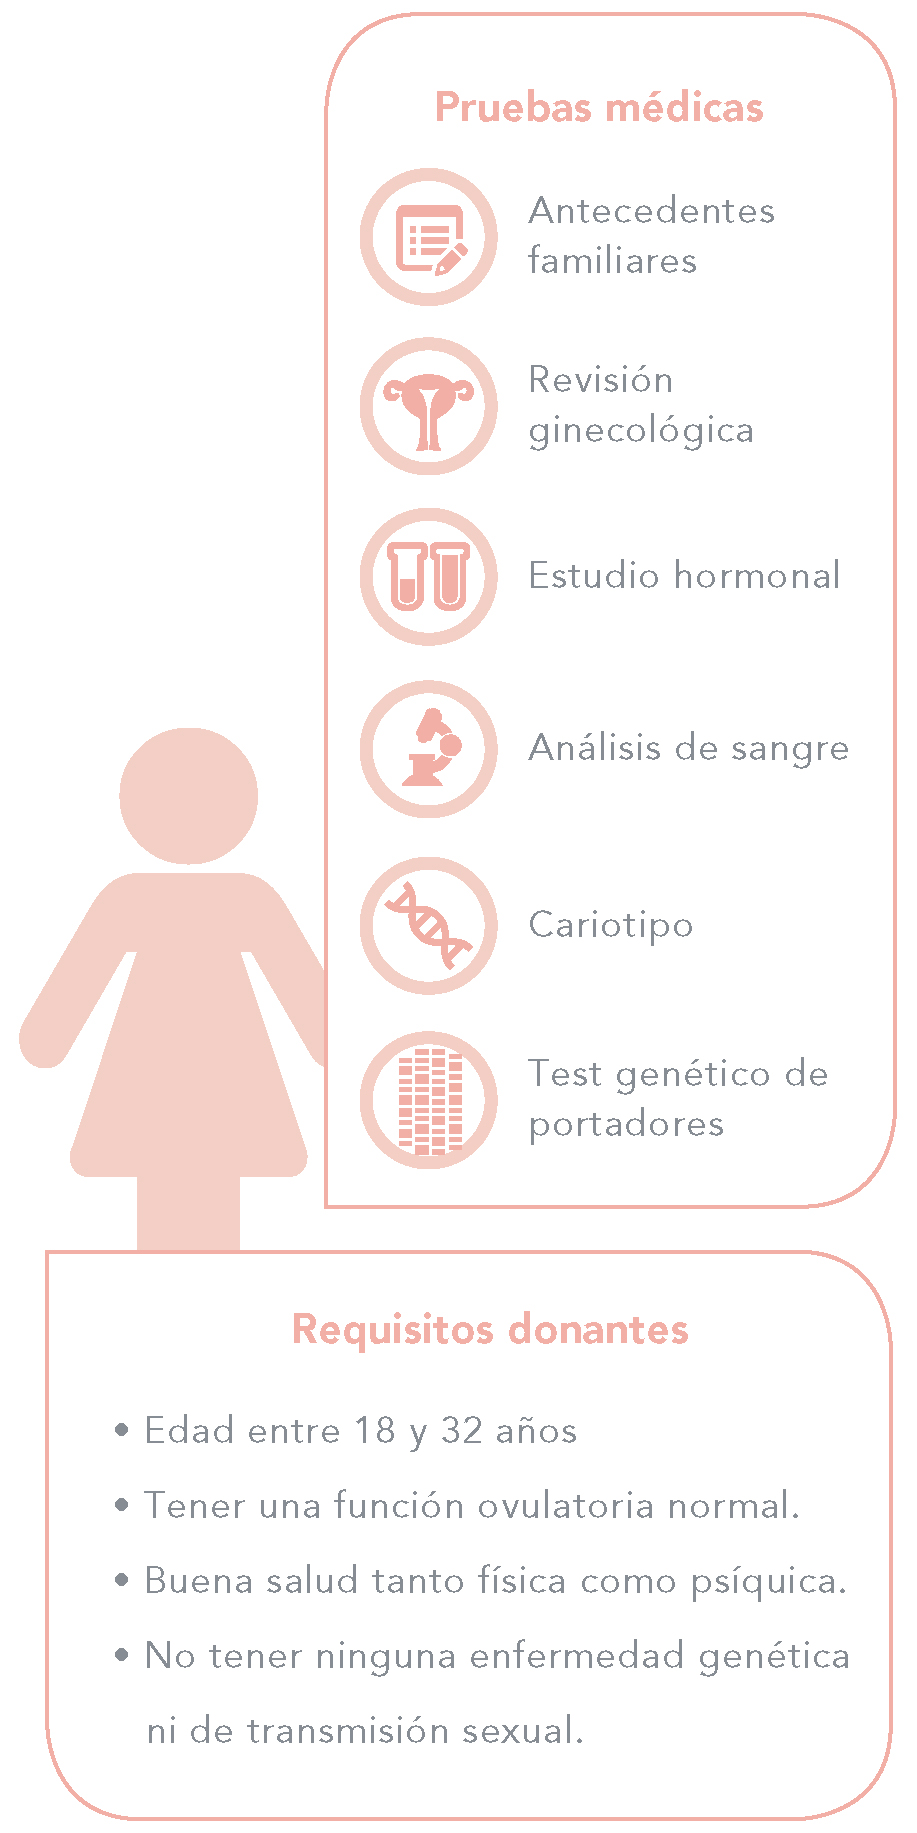 Requisitos donantes de óvulos - Mujeres